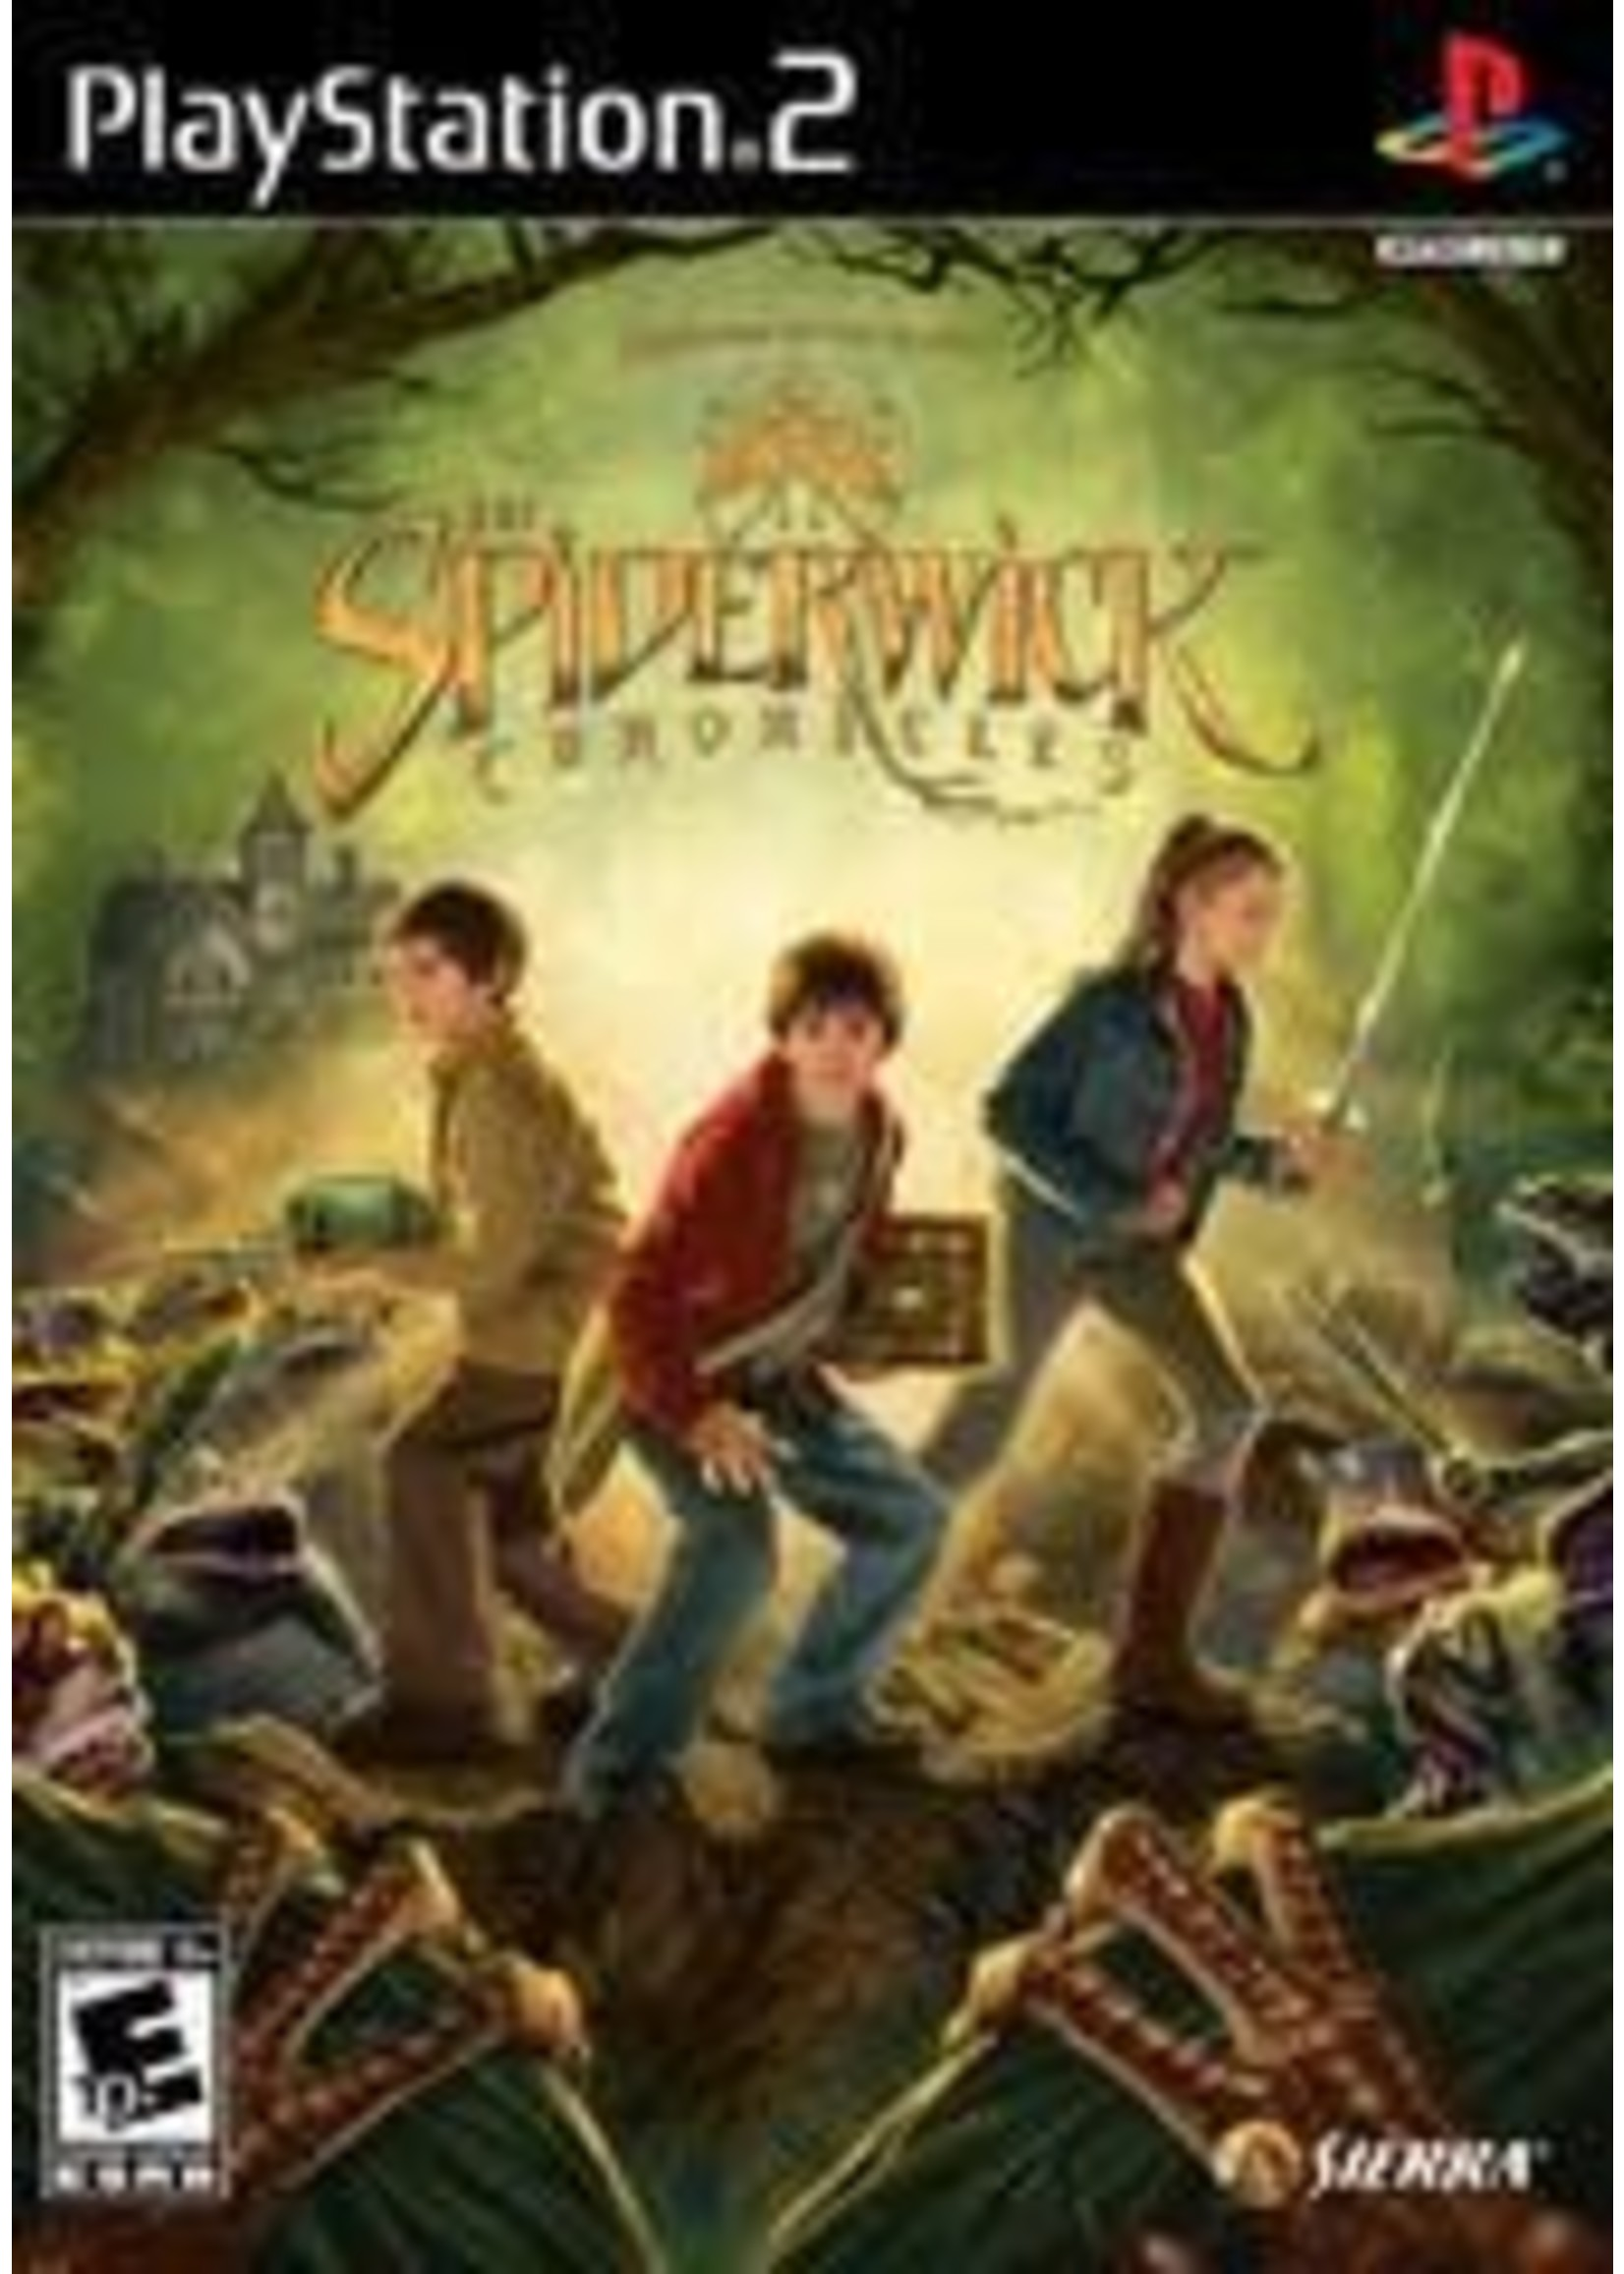 The Spiderwick Chronicles Playstation 2